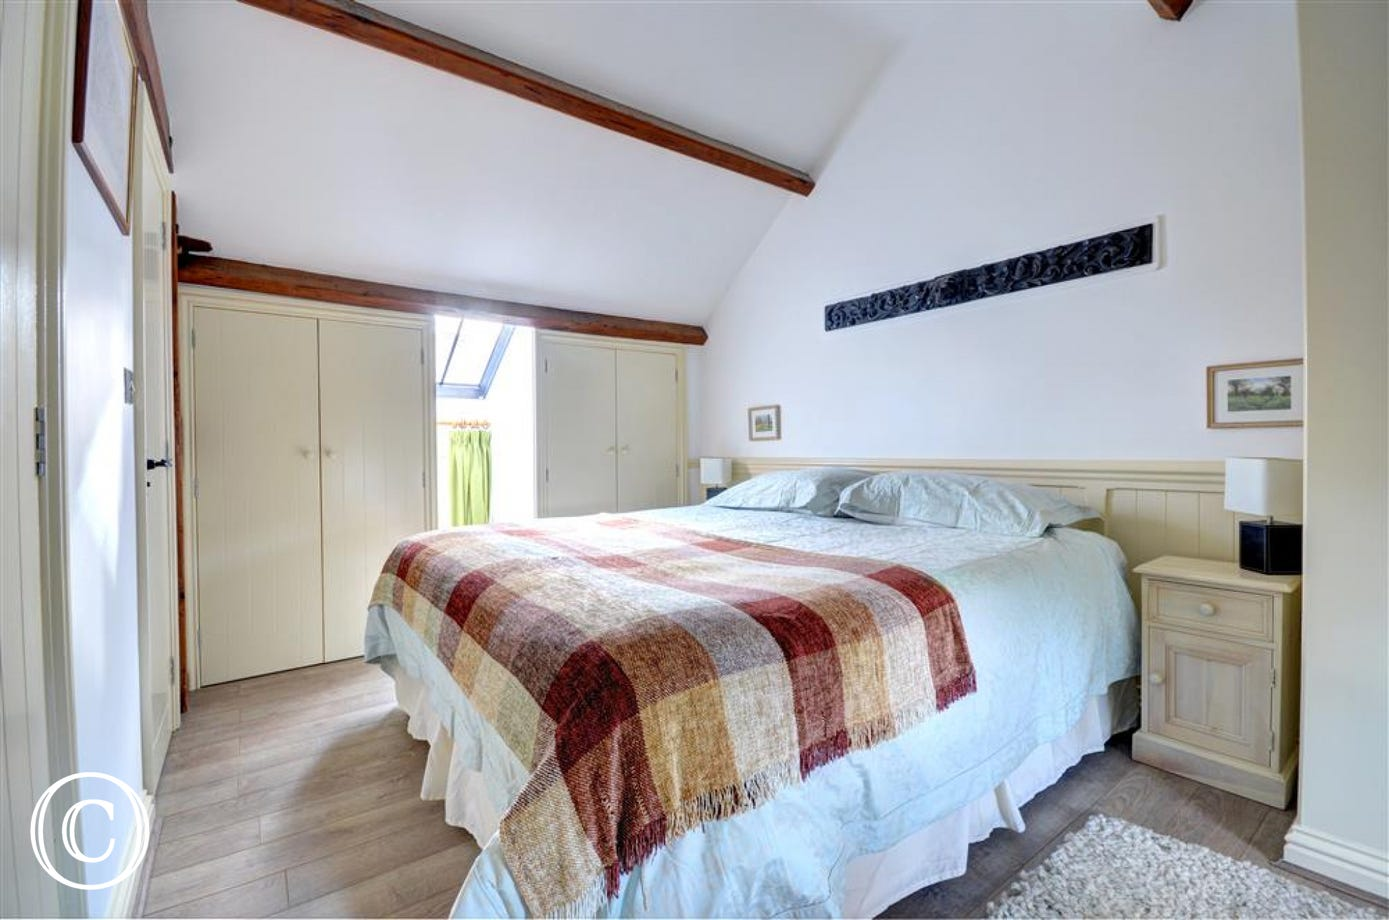 Lovely beamed ceilings and a king-size bed.